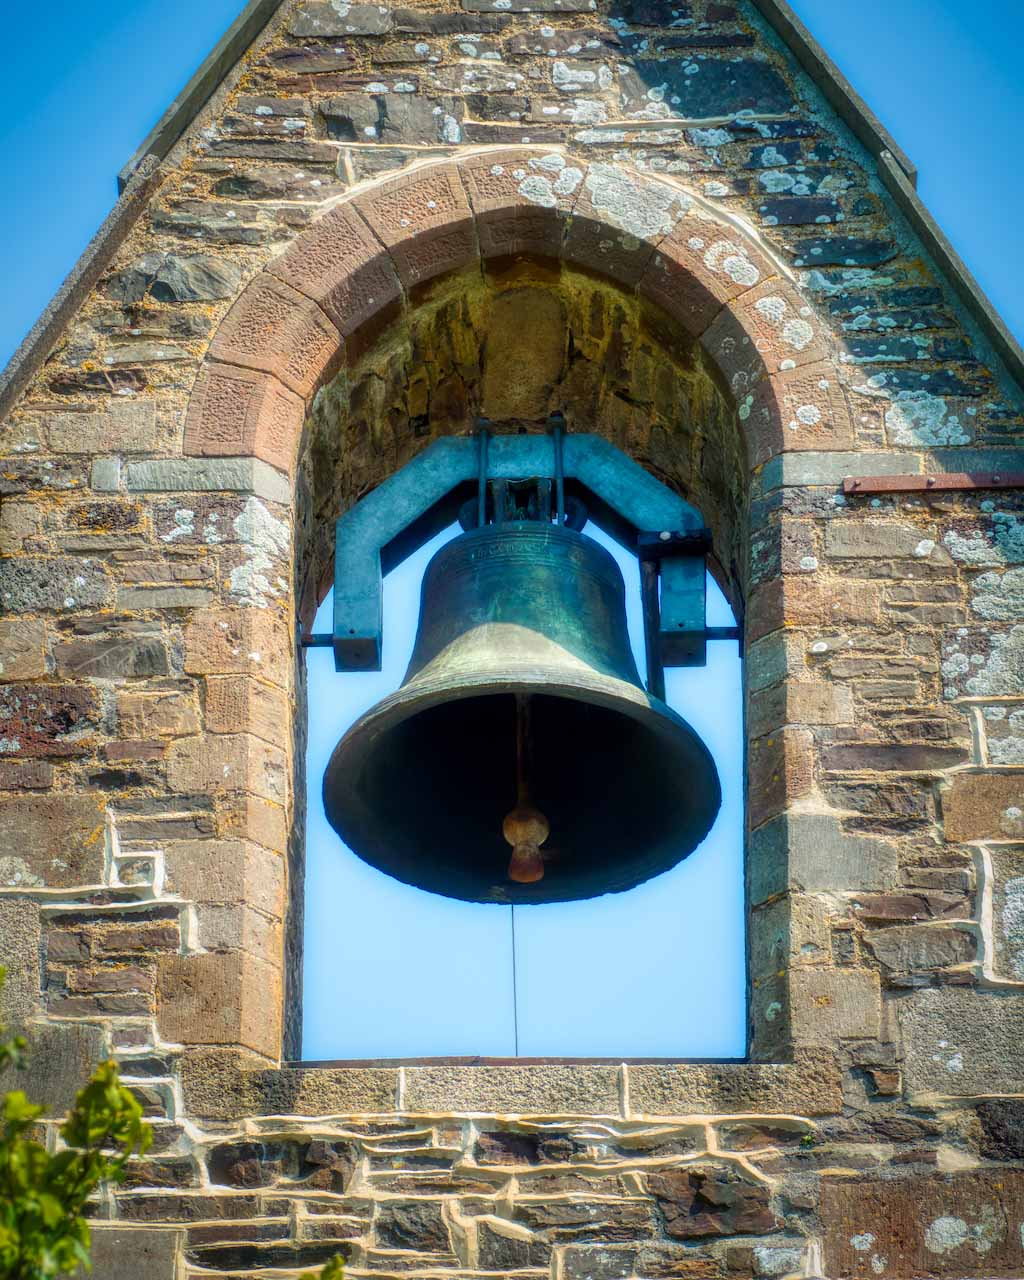 The bellcote of Virginstowe St Brigid's in Devon; unusually it does not have a tower, just this bell surrounded by gorgeous stonework.